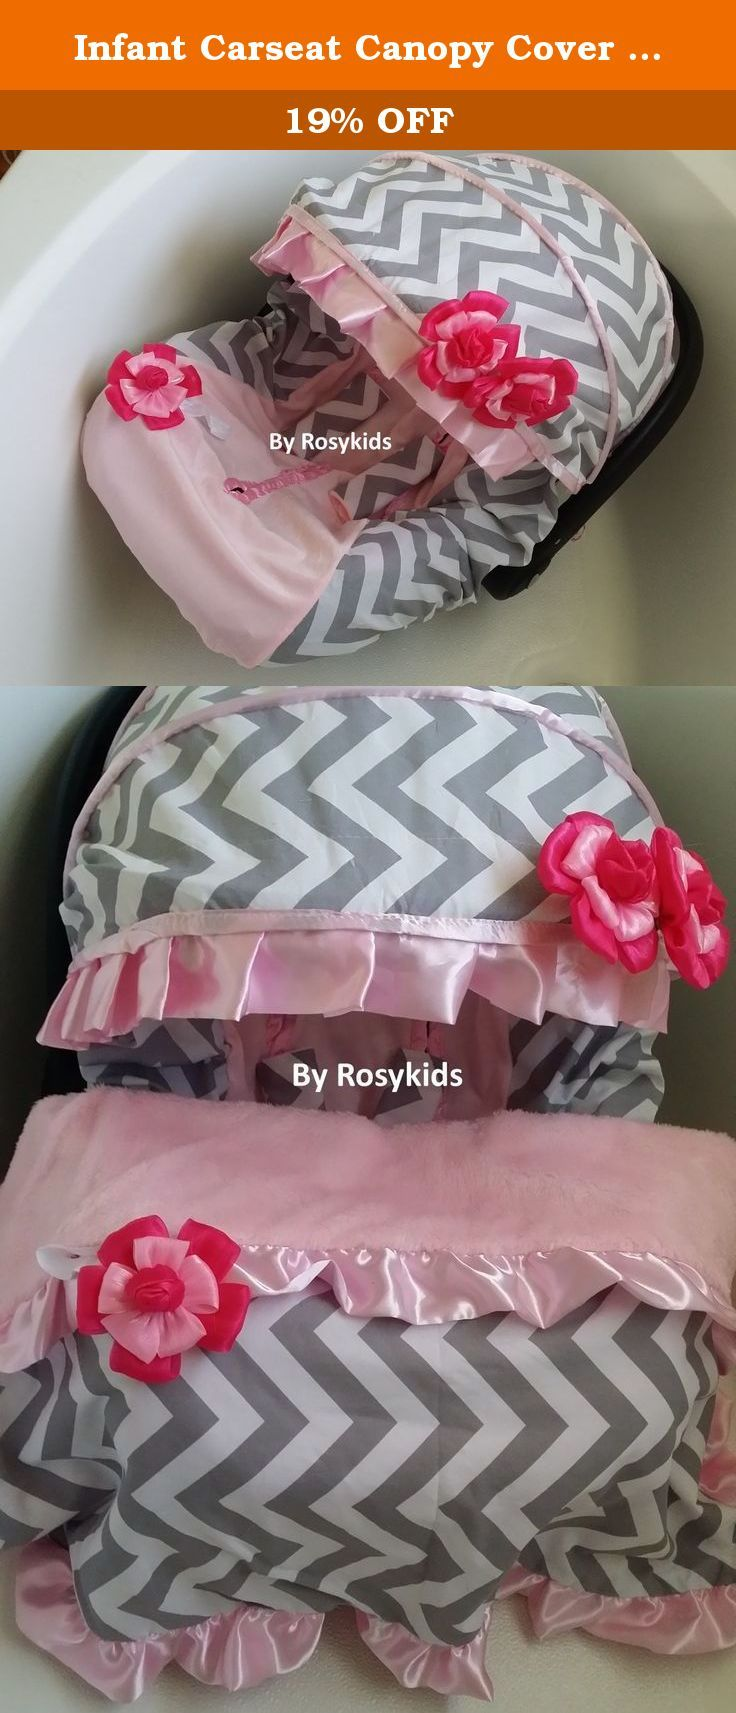 This Item Include One Infant Car Seat Cover With Replacement Canopy